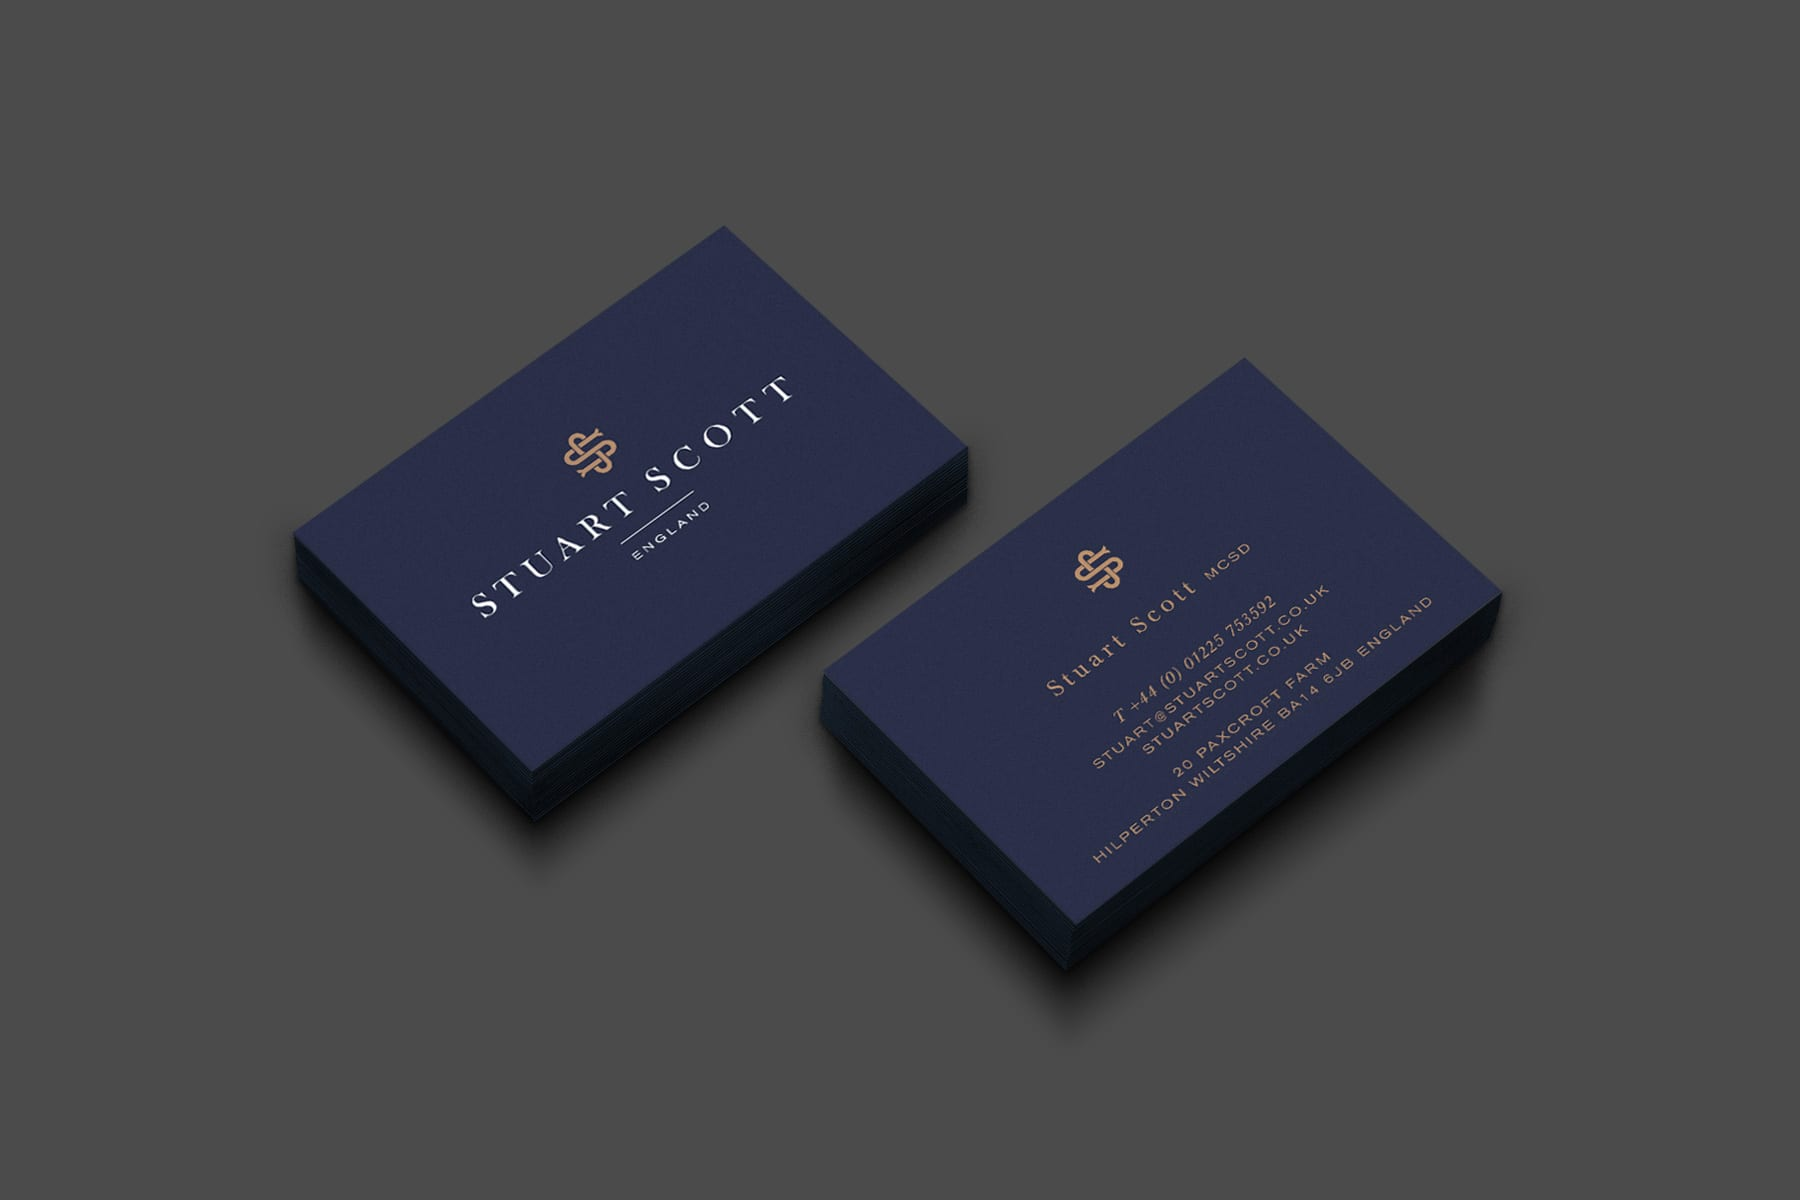 Luxury Furniture Branding Stuart Scott Business cards